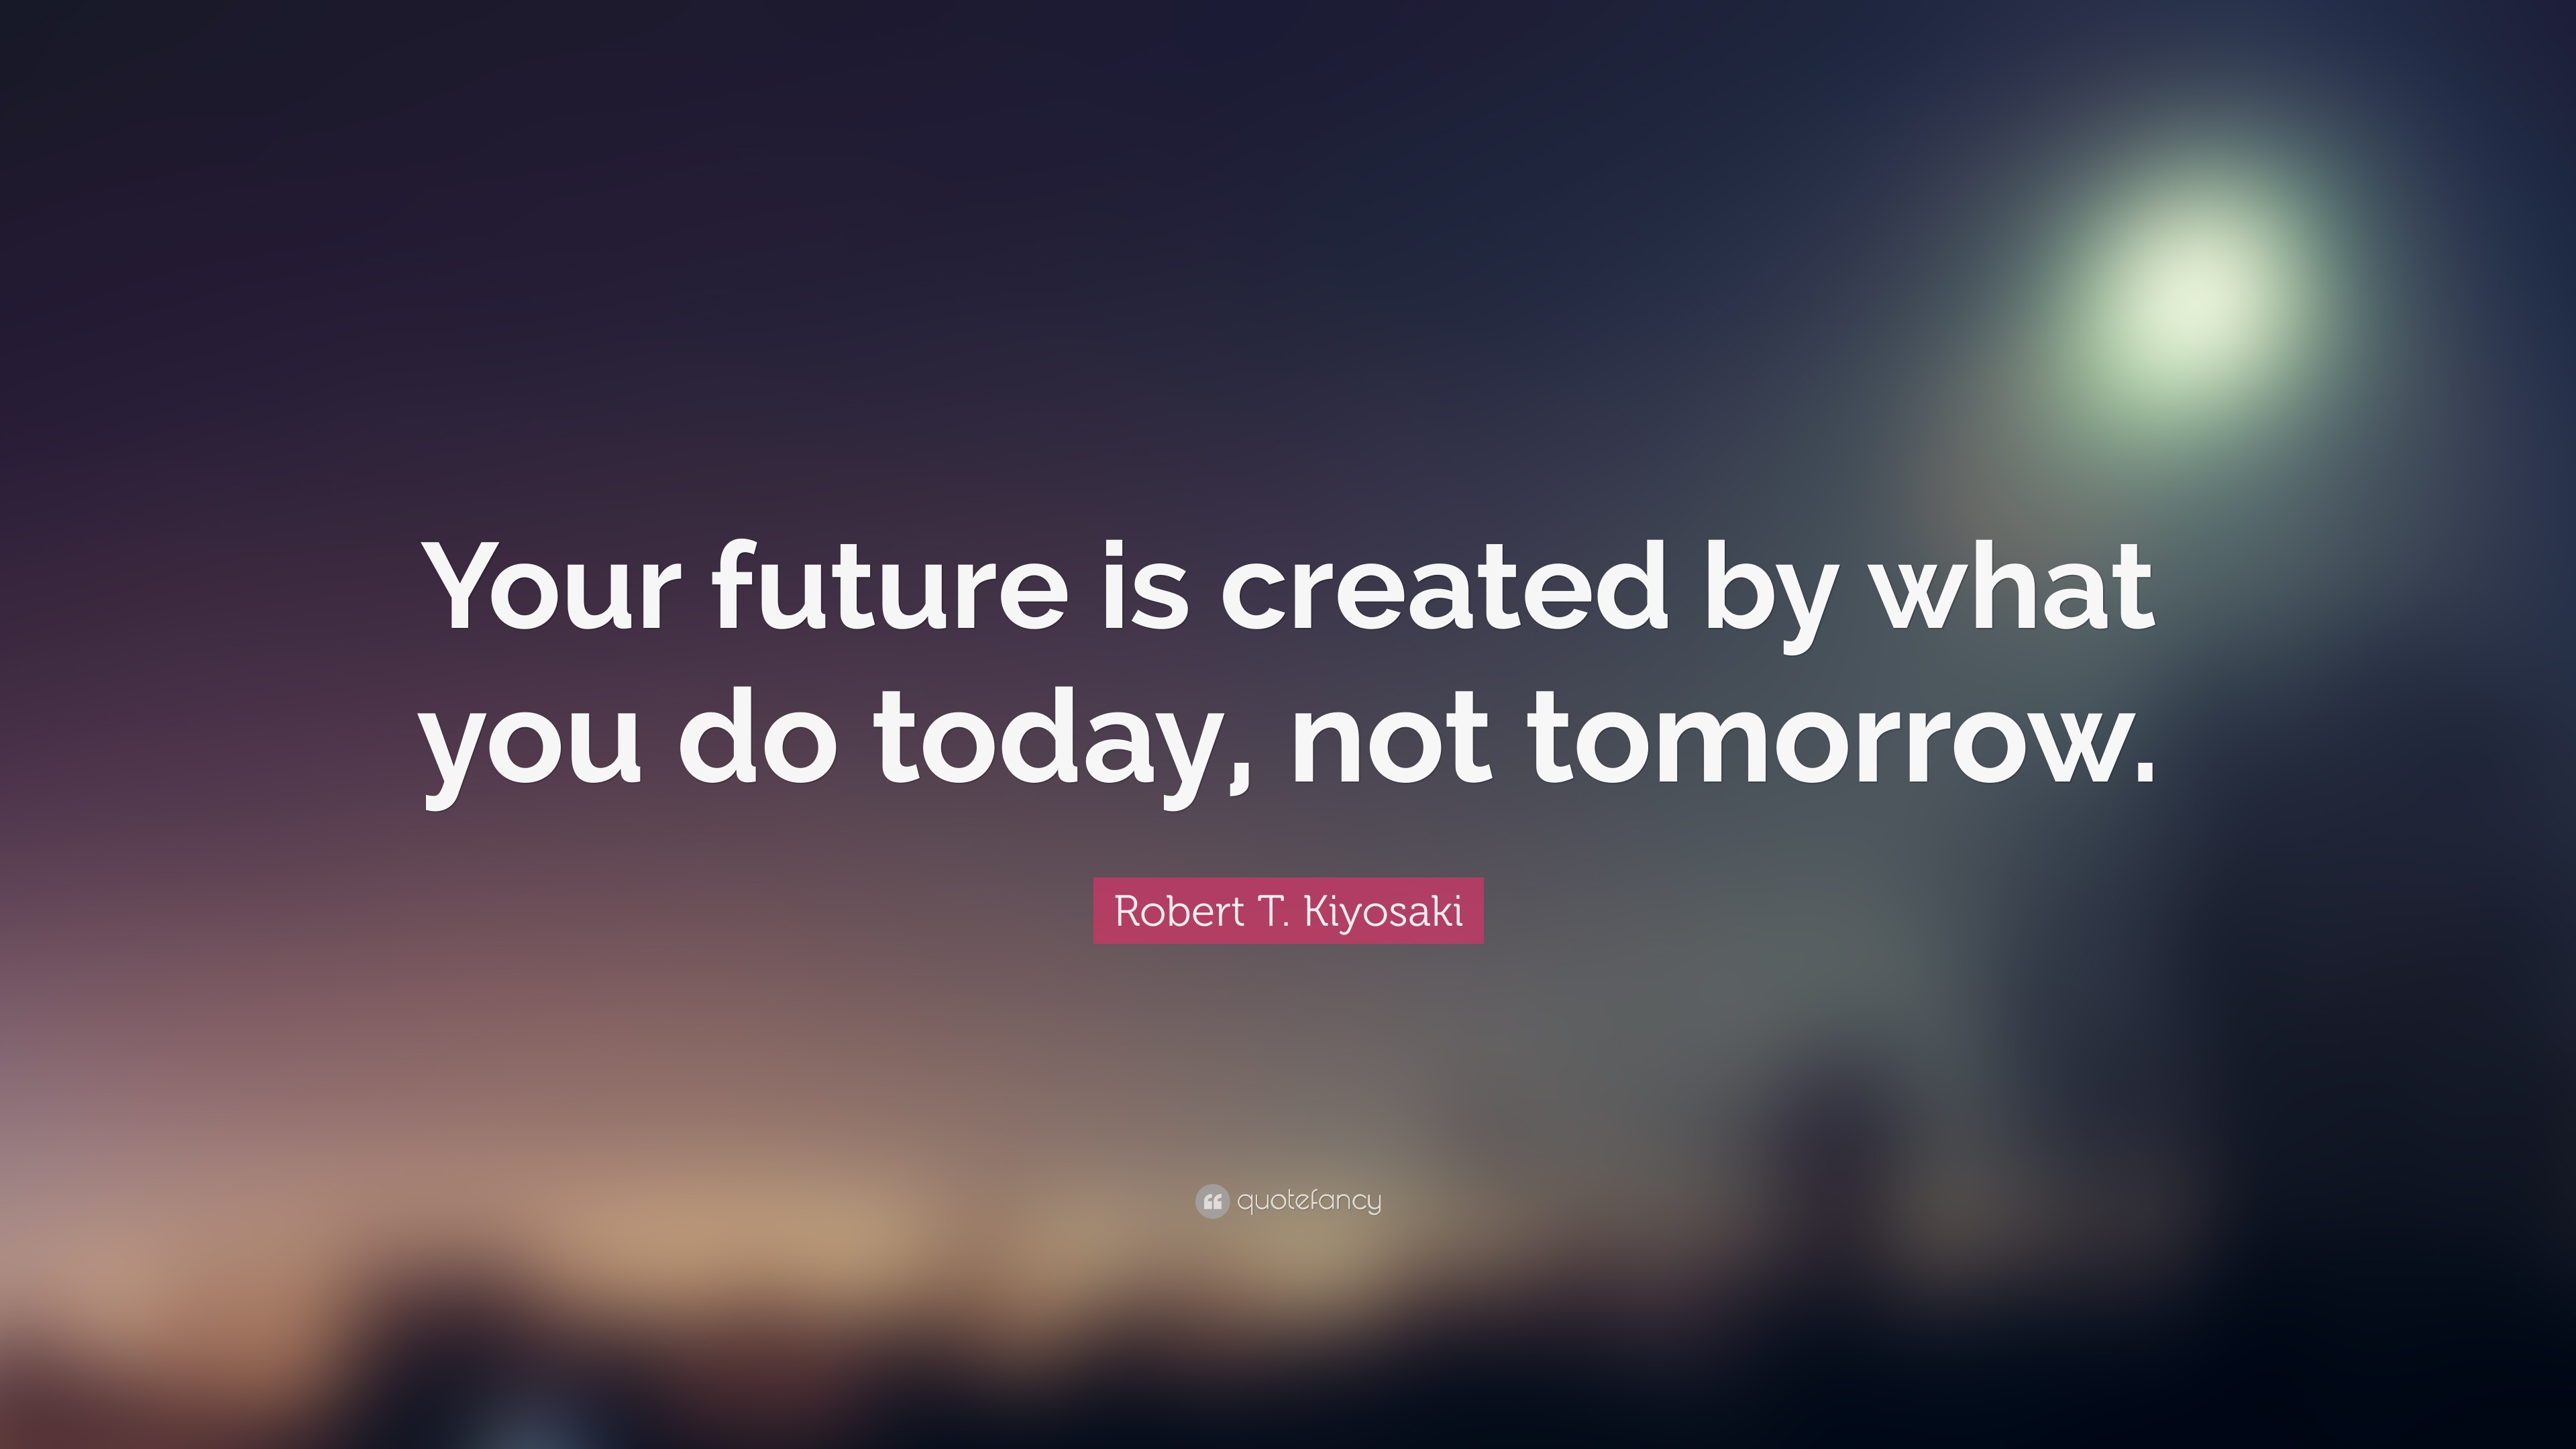 Superior Robert T. Kiyosaki Quote: U201cYour Future Is Created By What You Do Today